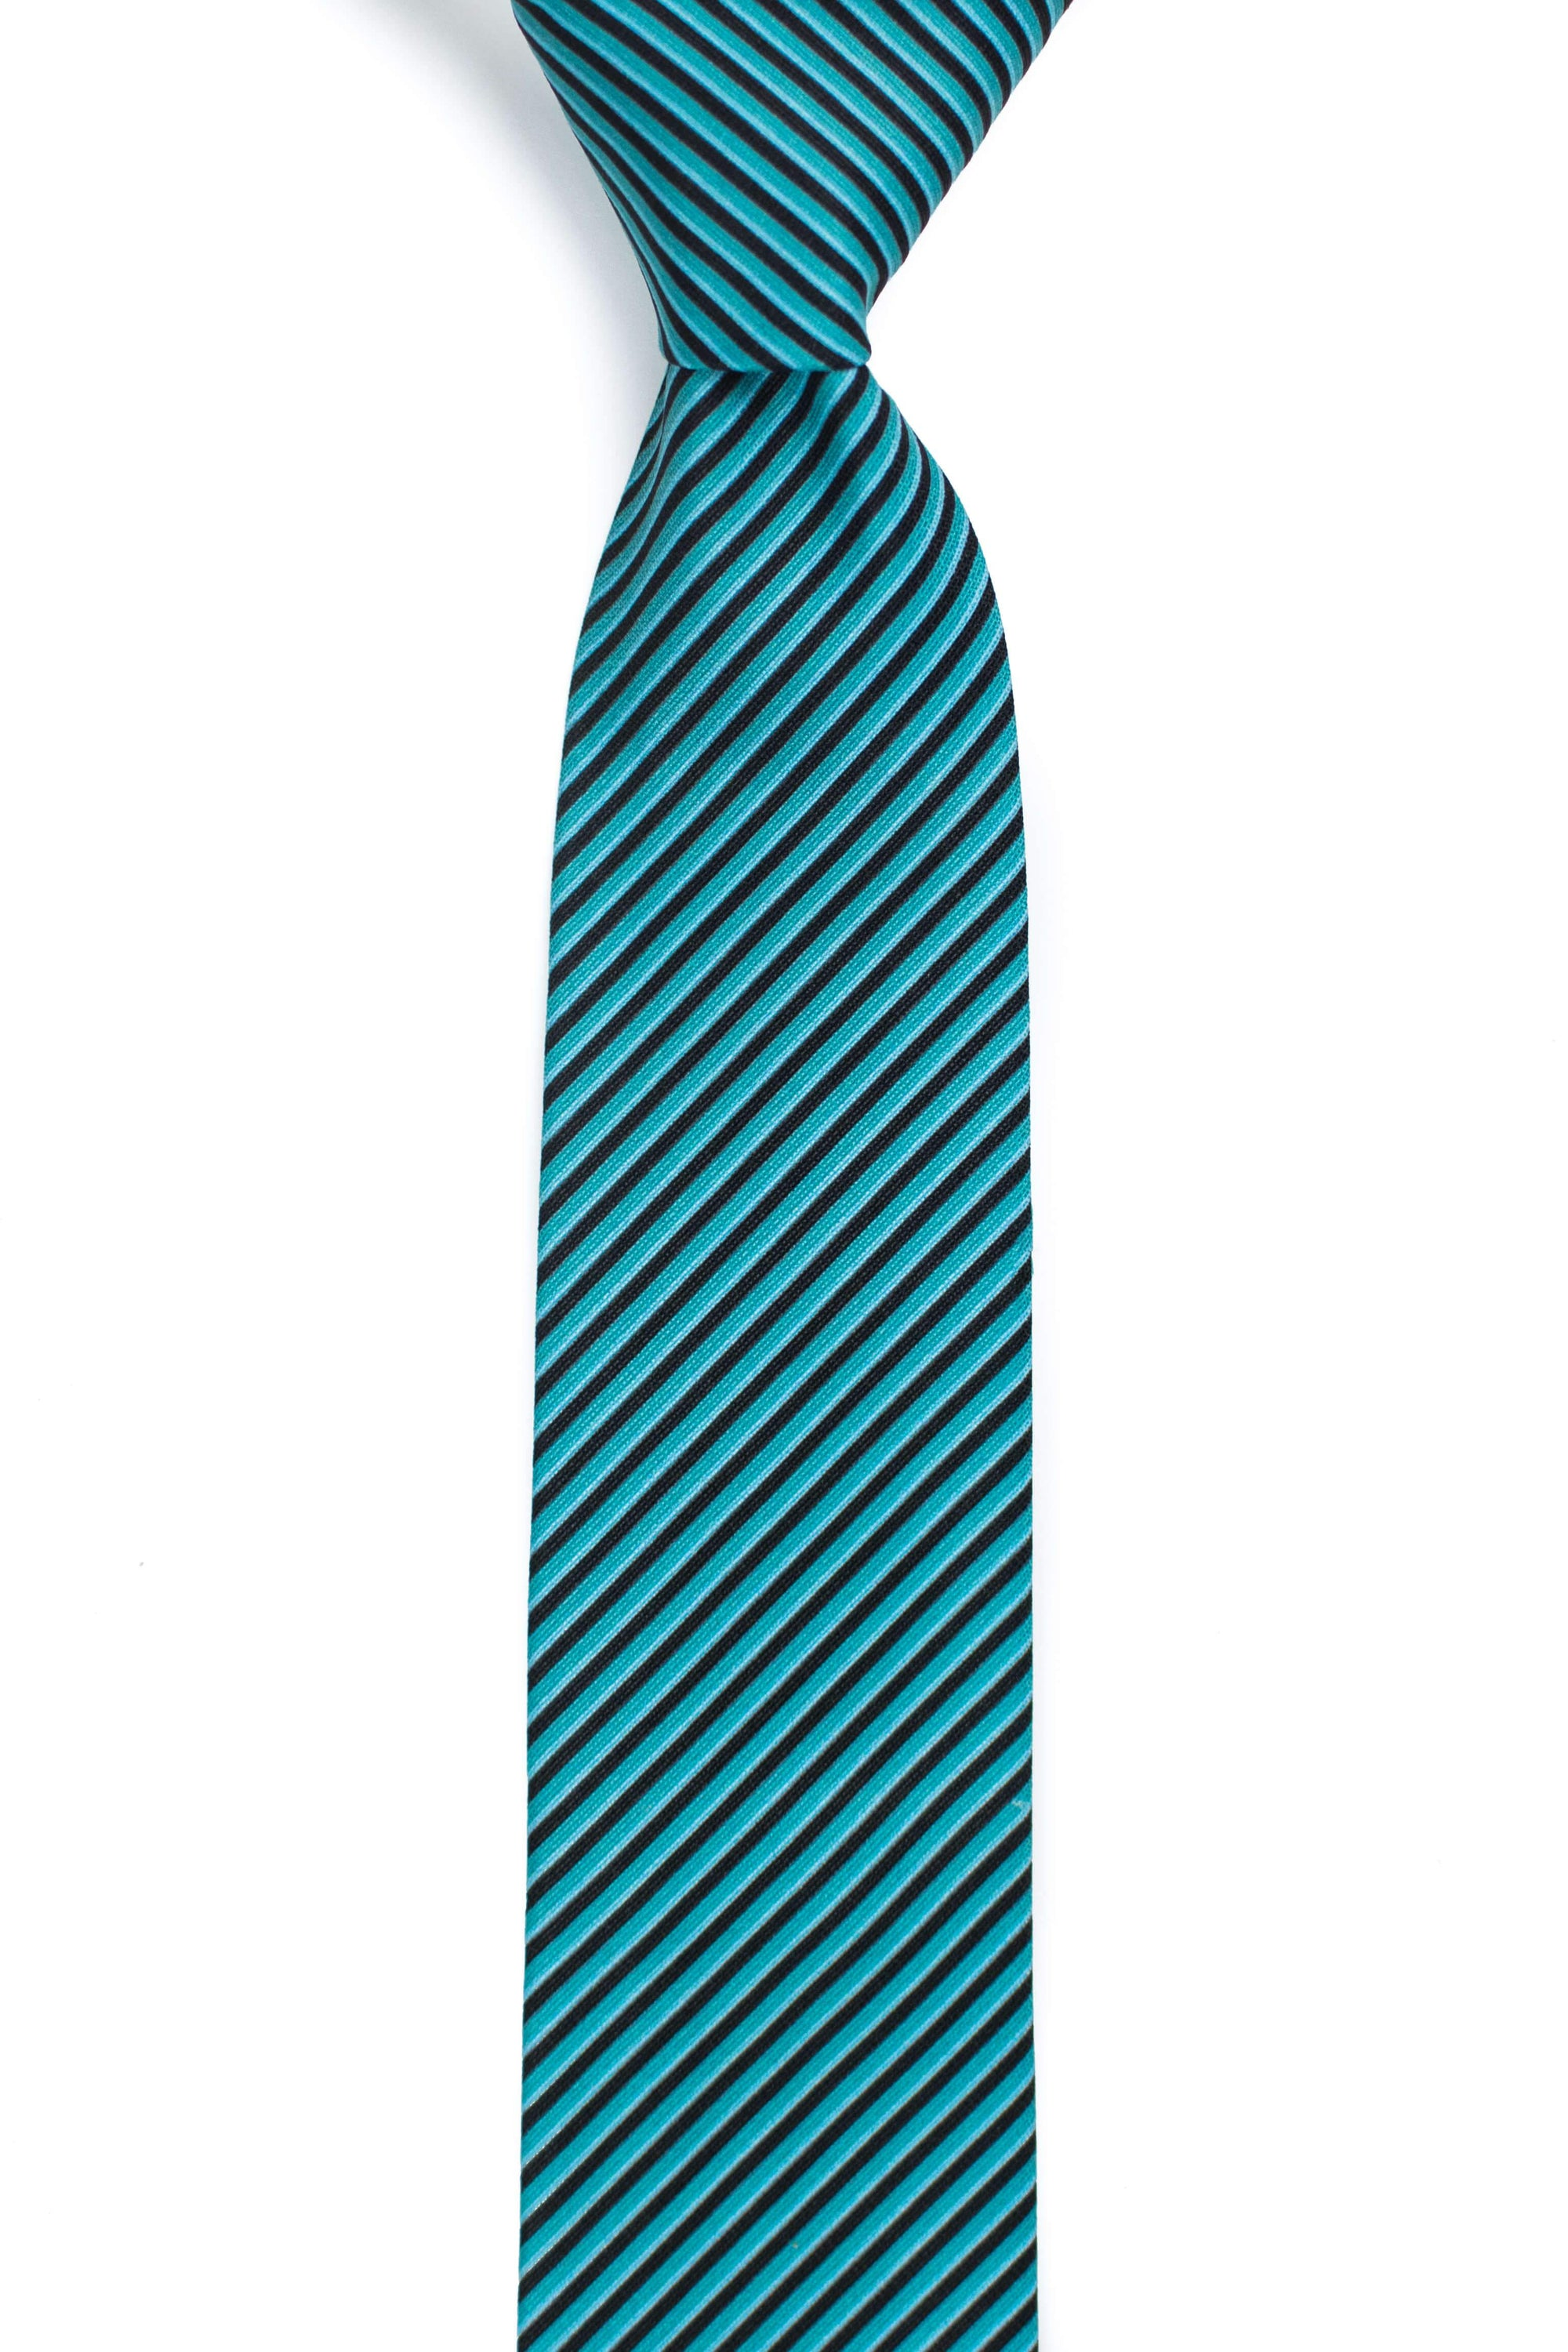 green and black striped tie front view tough apparel